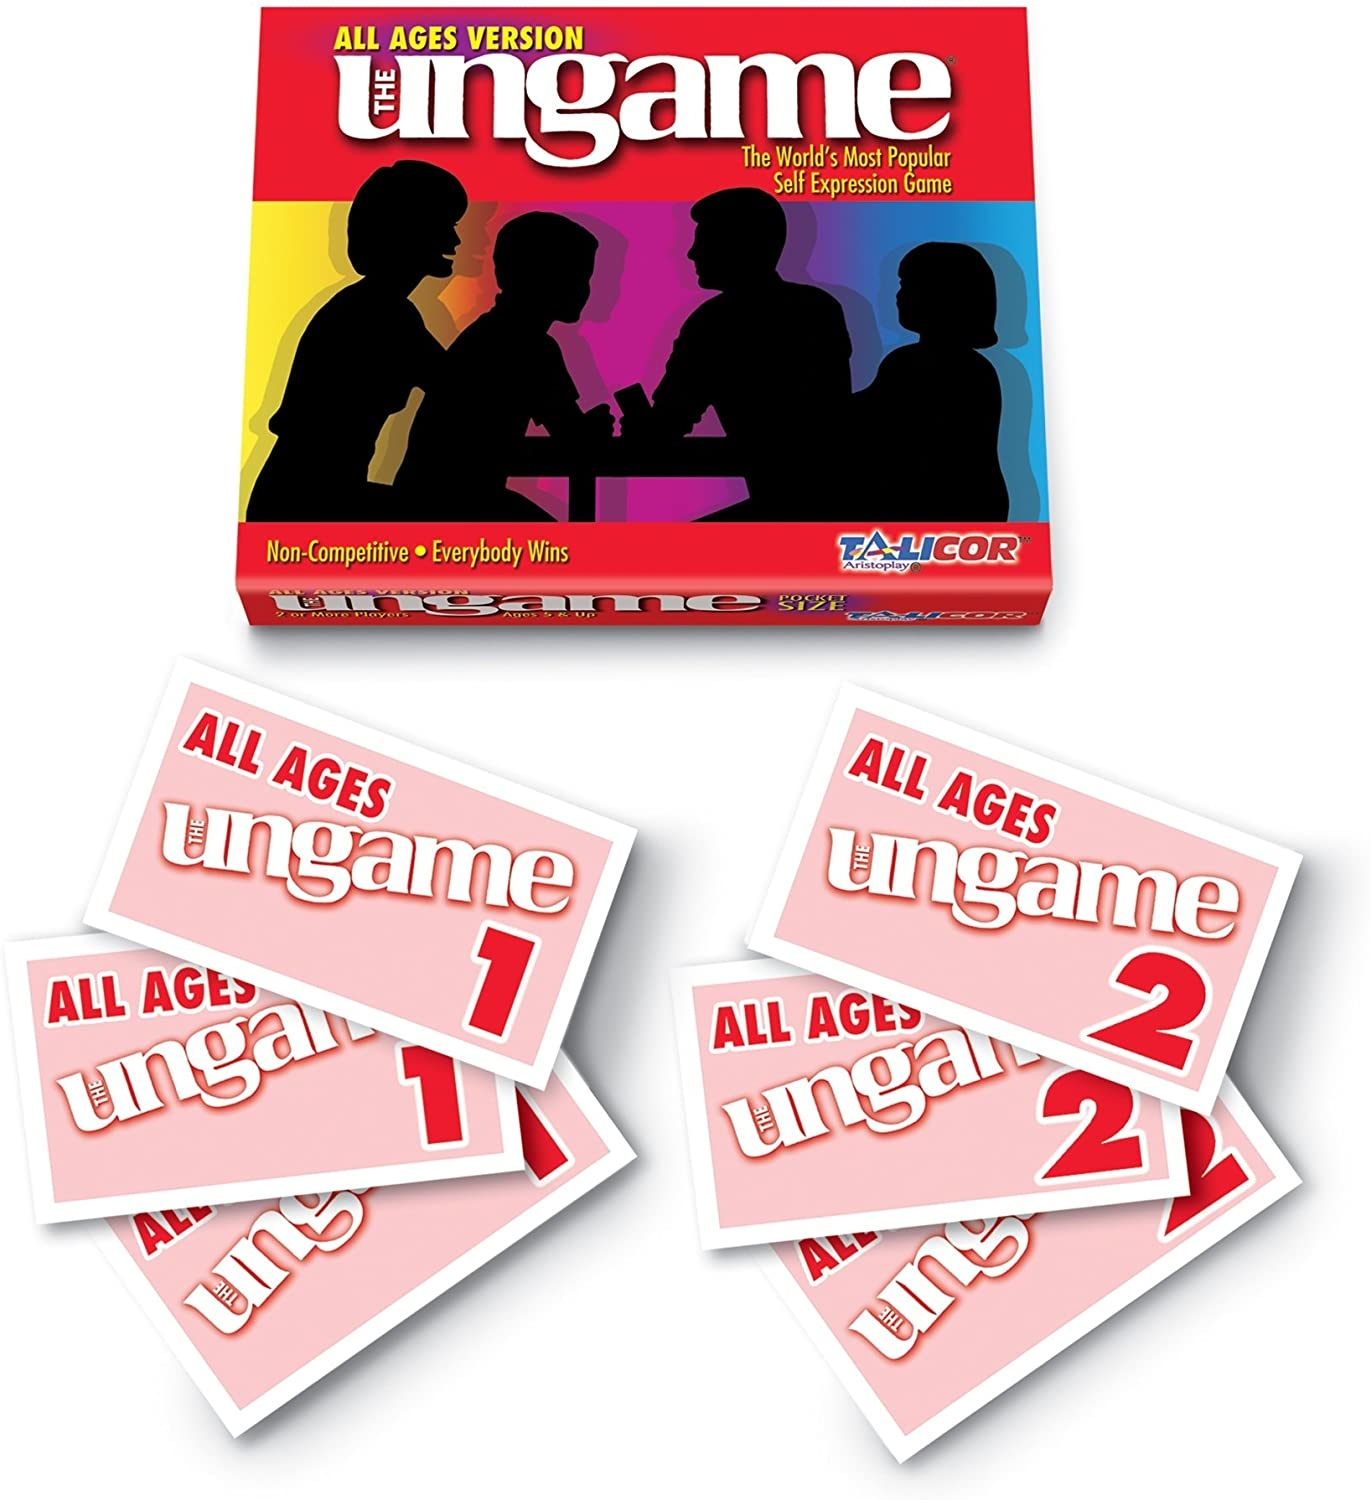 TALICOR UNGAME POCKET ALL AGES